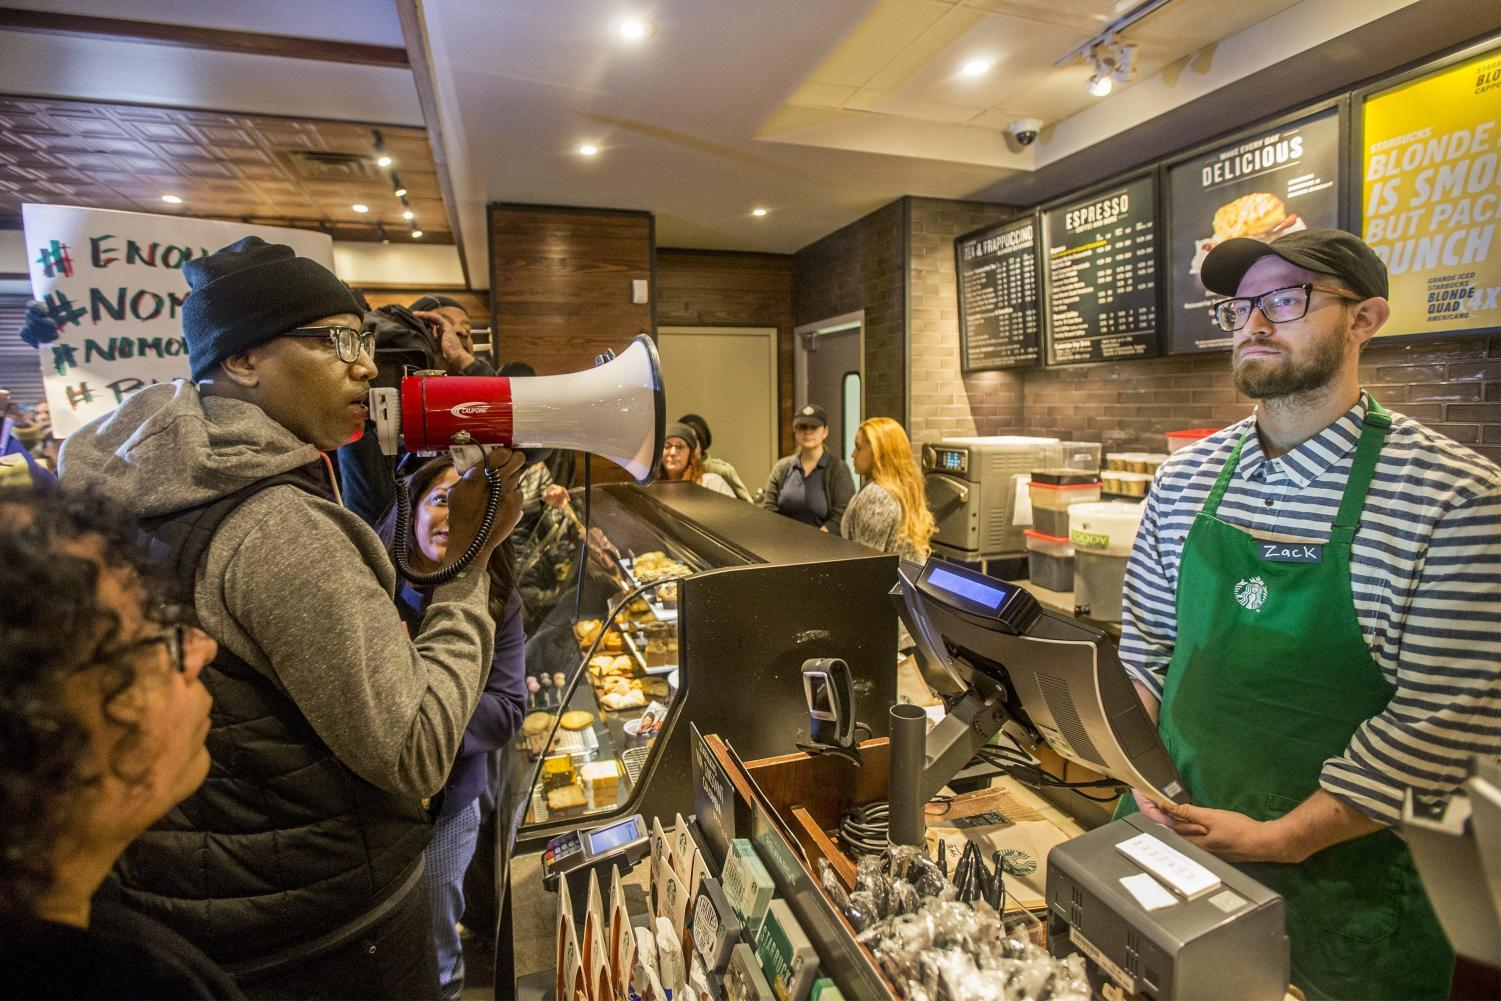 Activist Asa Khalif, left, stands inside a Starbucks, April 15 demanding the firing of the manager who called police resulting the arrest of two black men.  (Michael Bryant | The Philadelphia Inquirer via AP)